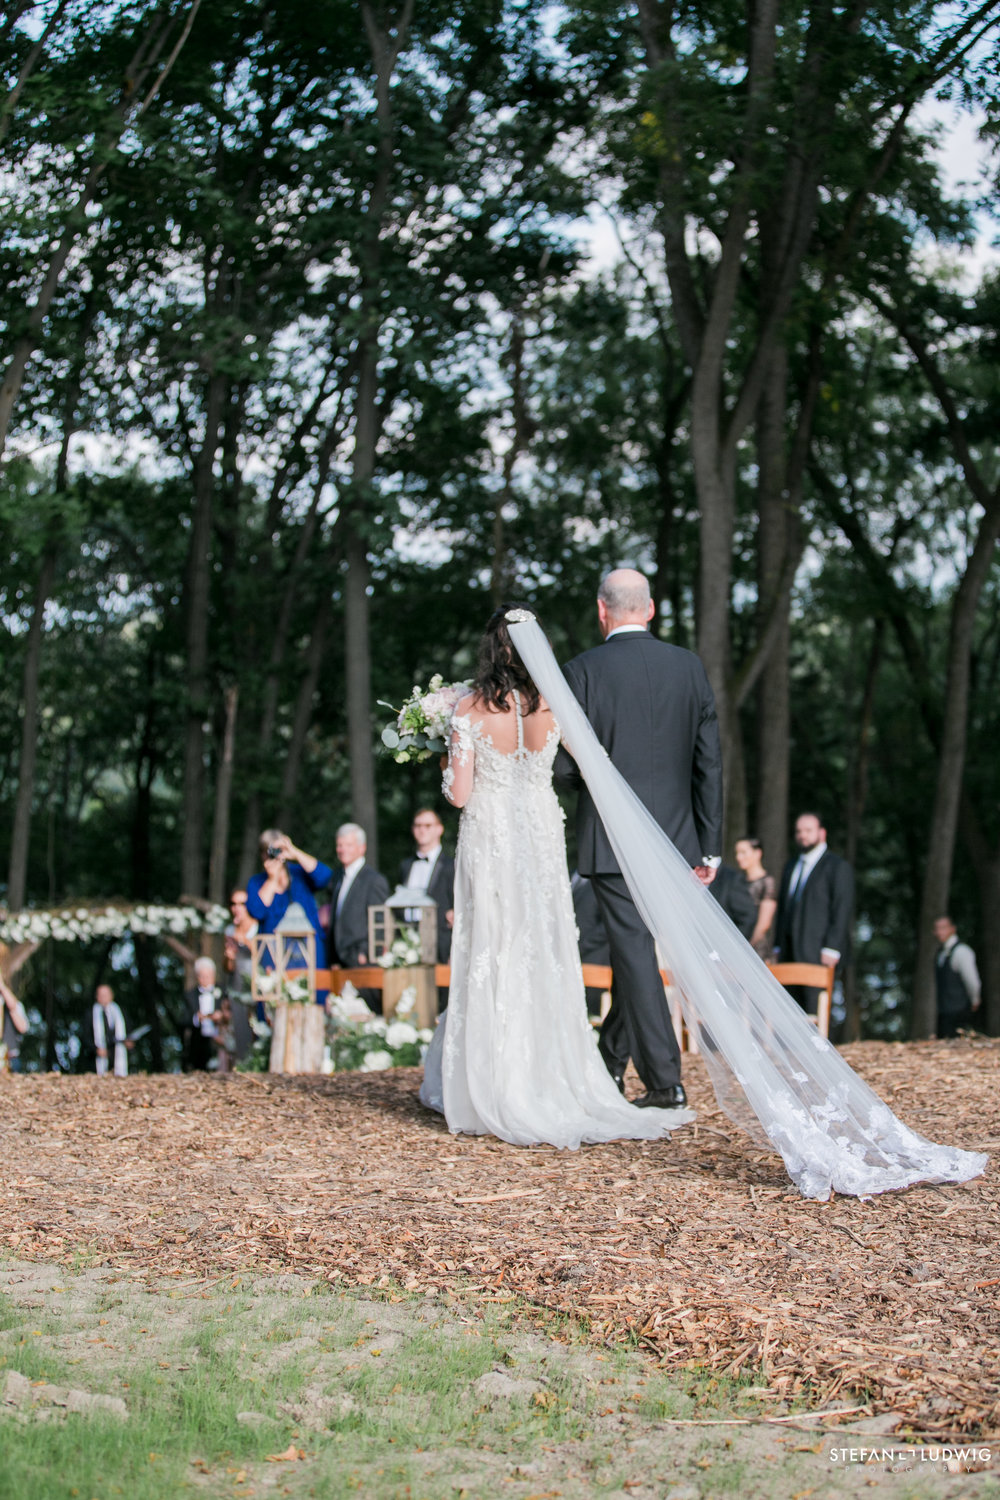 Heather and Andrew Wedding Photography ay Meadow Ridge Farm in Hudson NY by Stefan Ludwig Photography-74.jpg